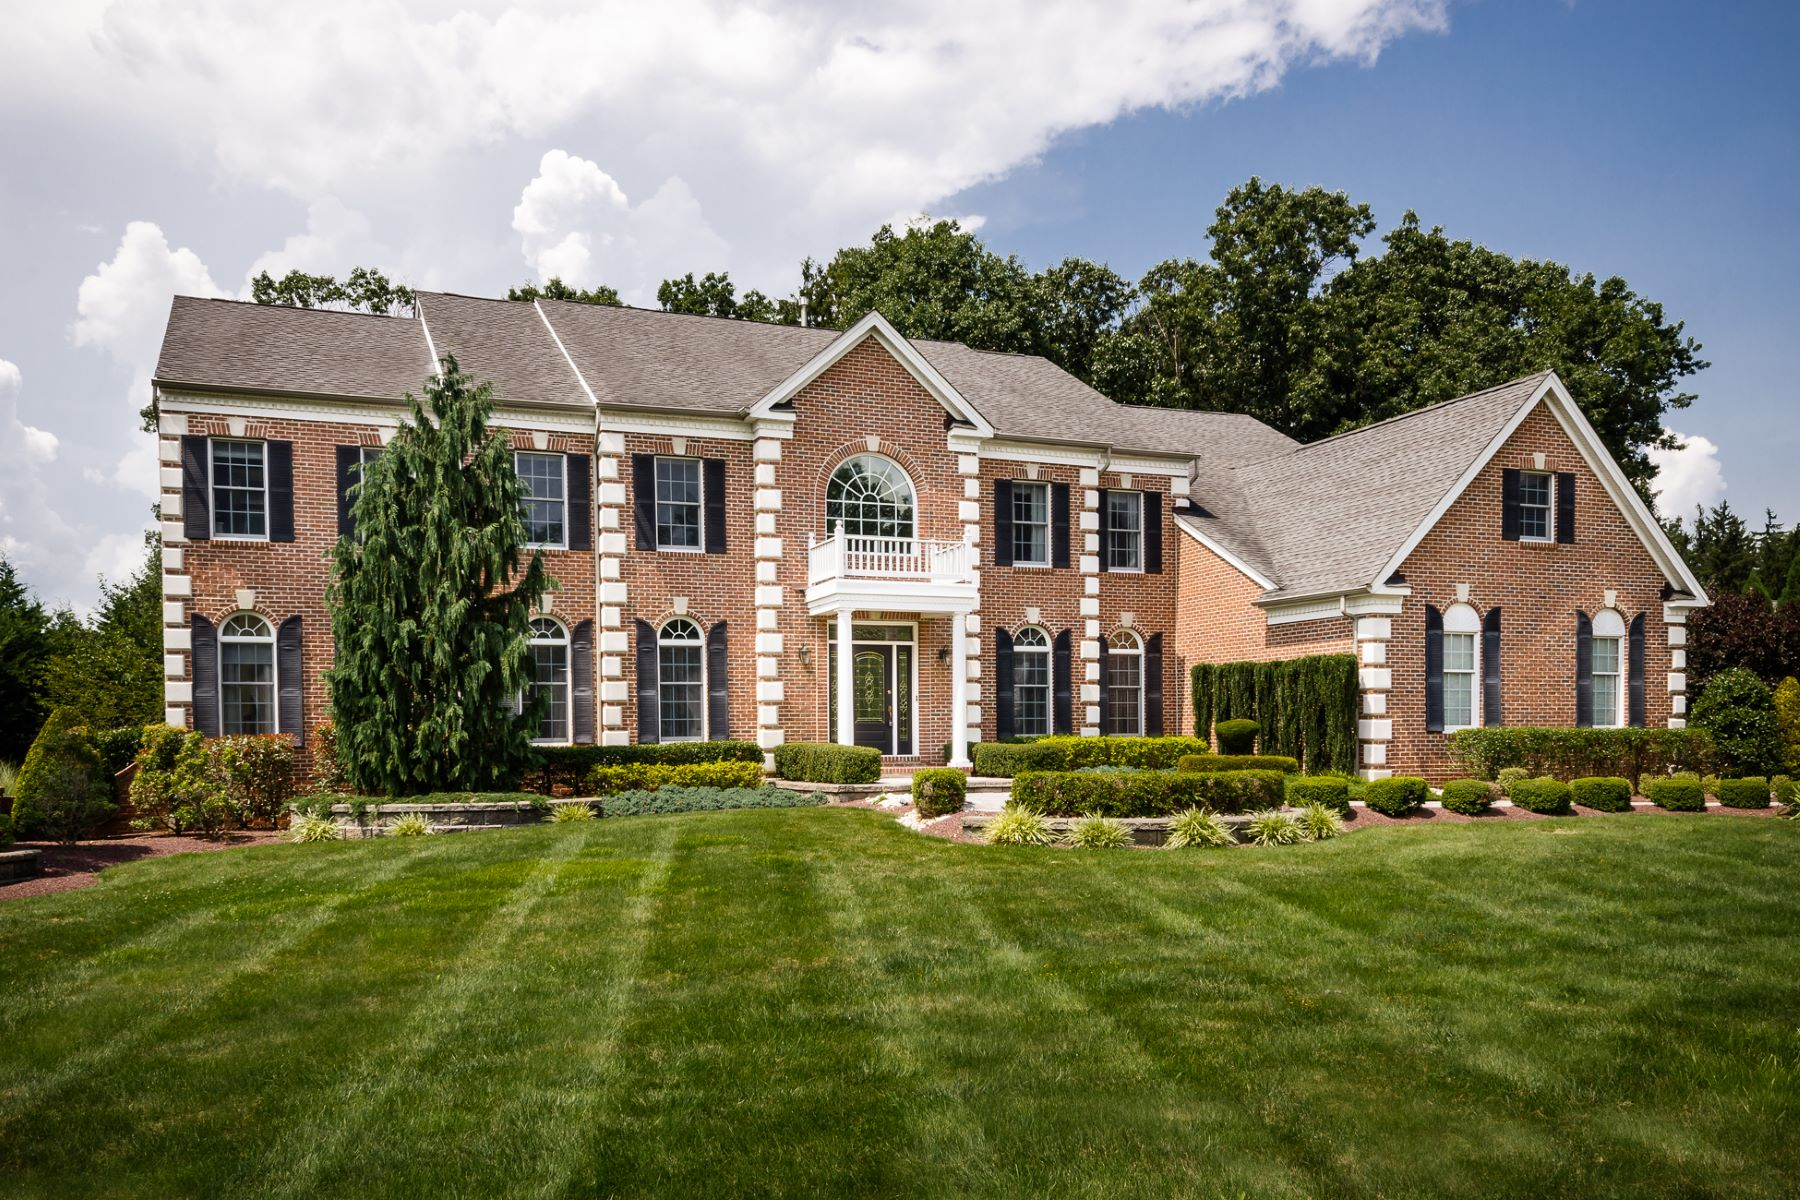 独户住宅 为 销售 在 Cranbury Colonial Celebrates Toll Brothers Luxury 14 Shady Brook Lane 克兰伯里, 新泽西州 08512 美国